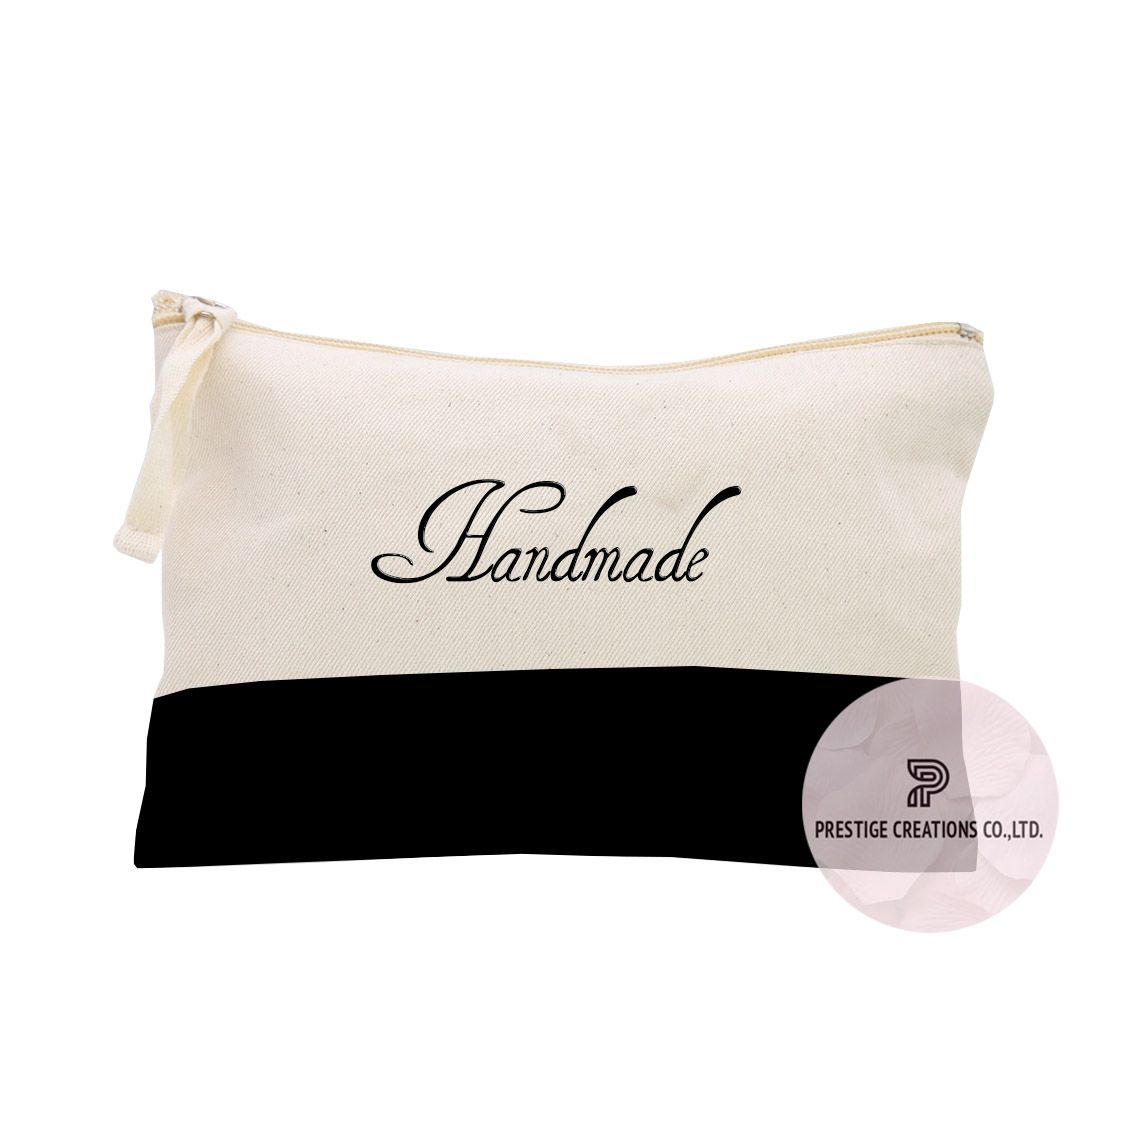 b6f8805d5762 Thai wholesaler of embroidered cotton bags and personalized cosmetic bags  offering beautiful two color design cosmetic bags for wholesale